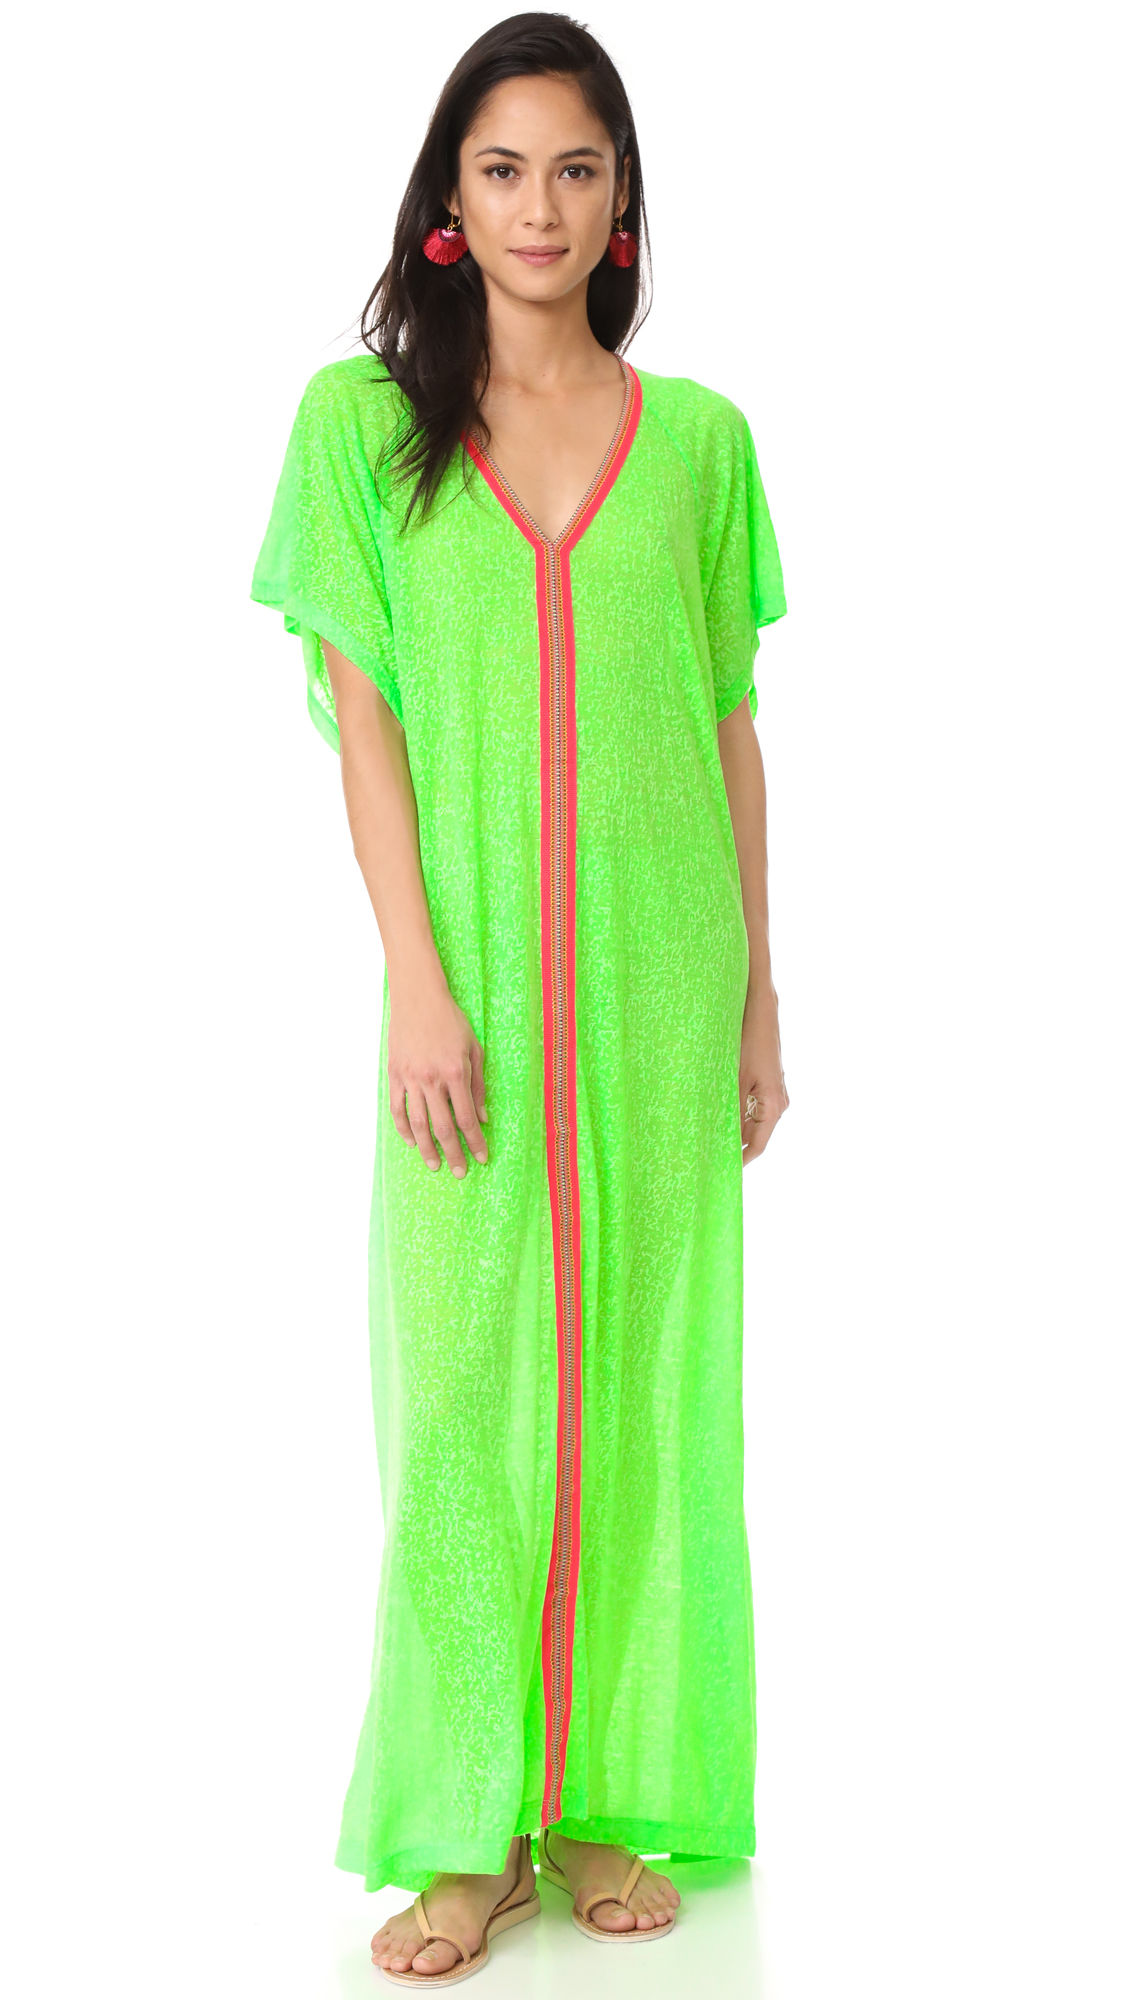 Pitusa Abaya Maxi Dress - Lime